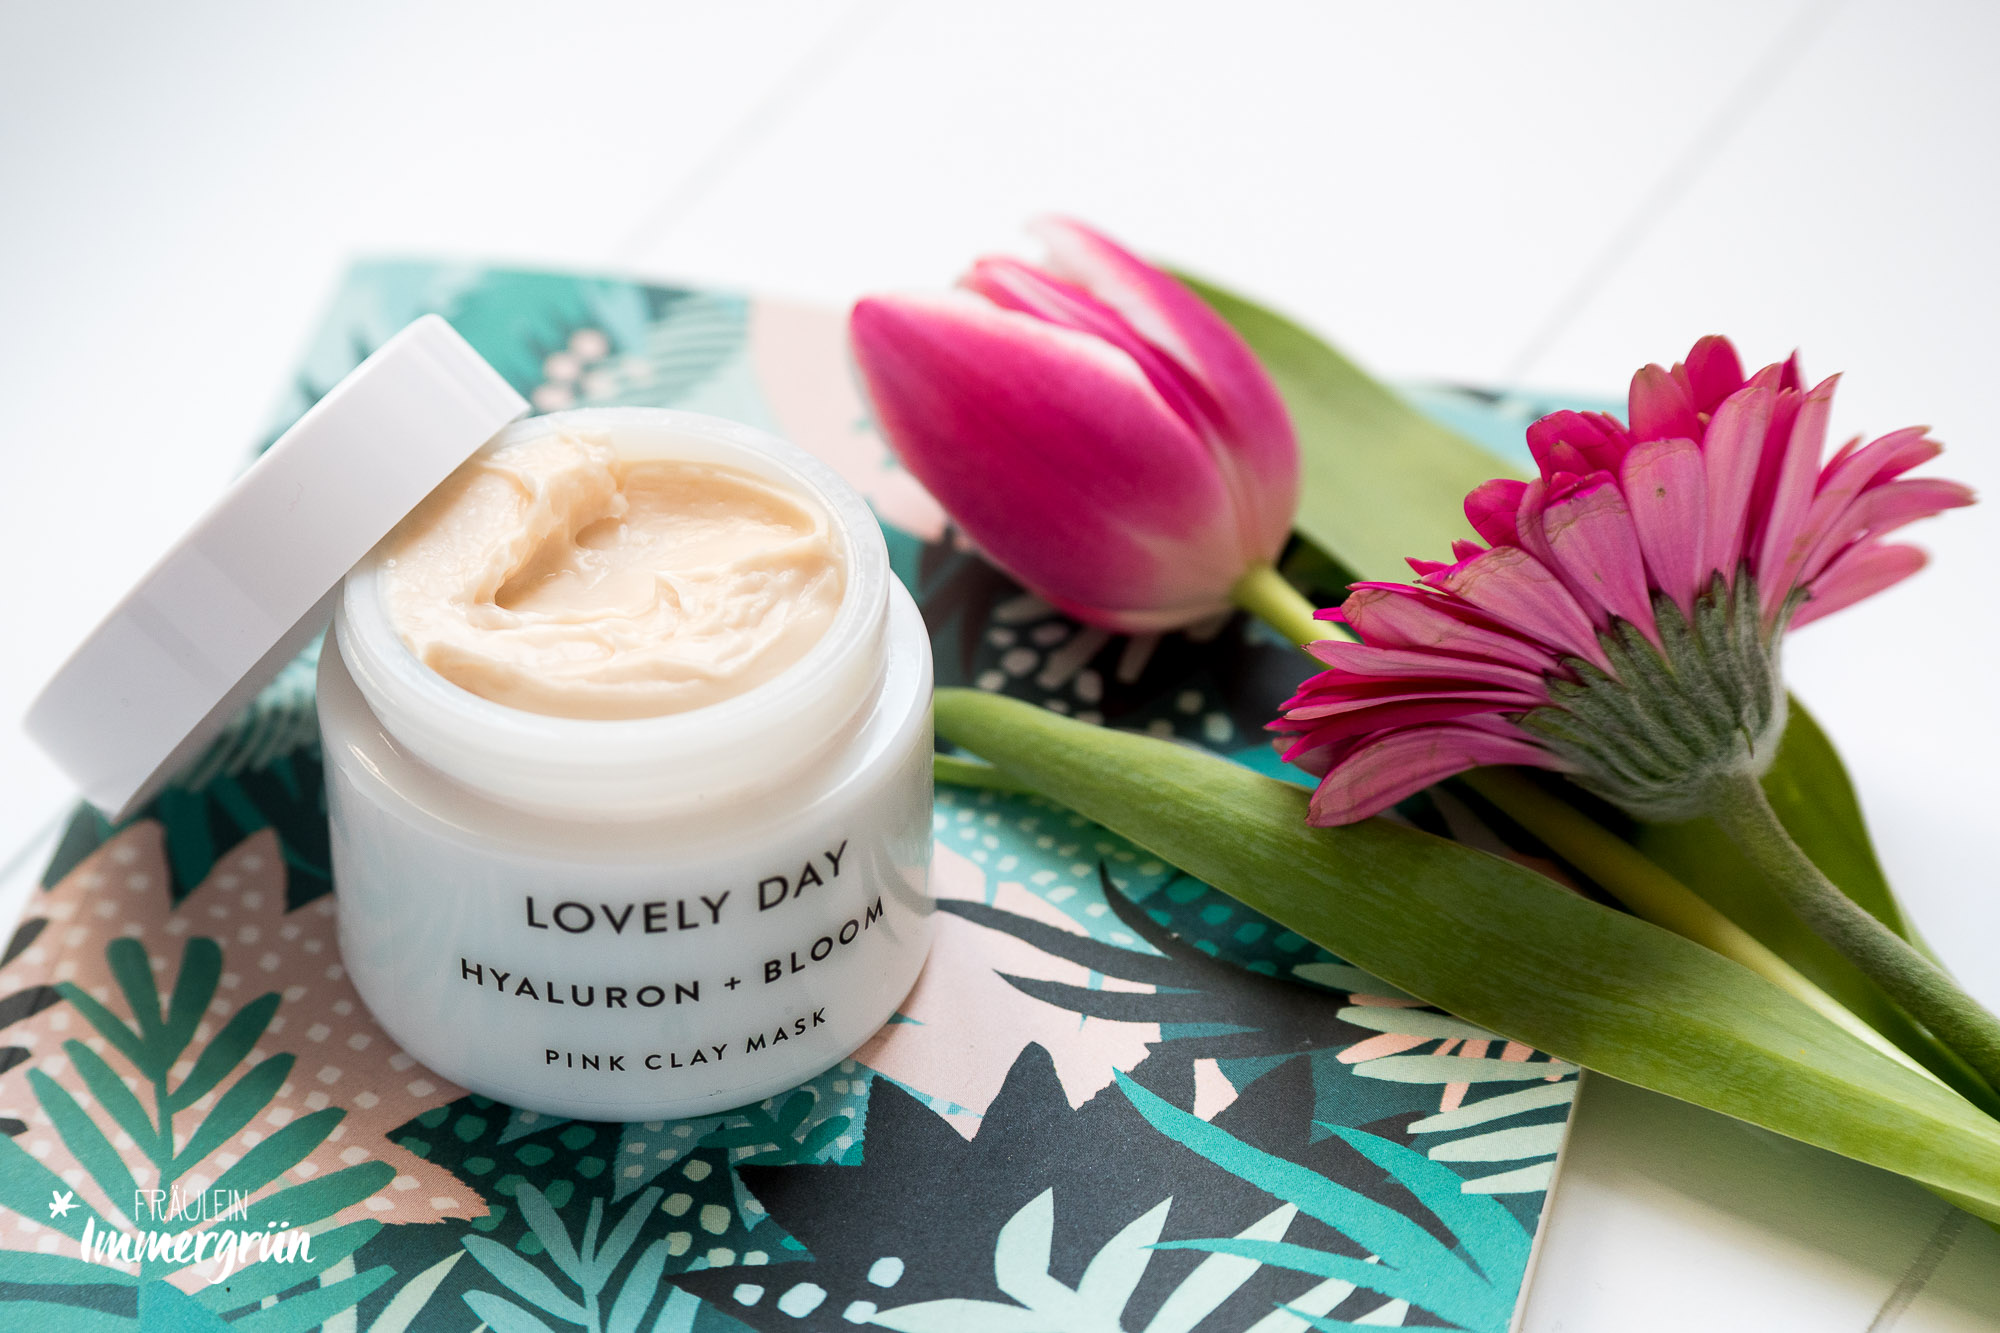 Naturkosmetik für sensible Haut: Glow und Feuchtigkeit mit Lovely Day Botanicals | Hyaluron + Bloom Face Toner | Tropical Hydration Nectar